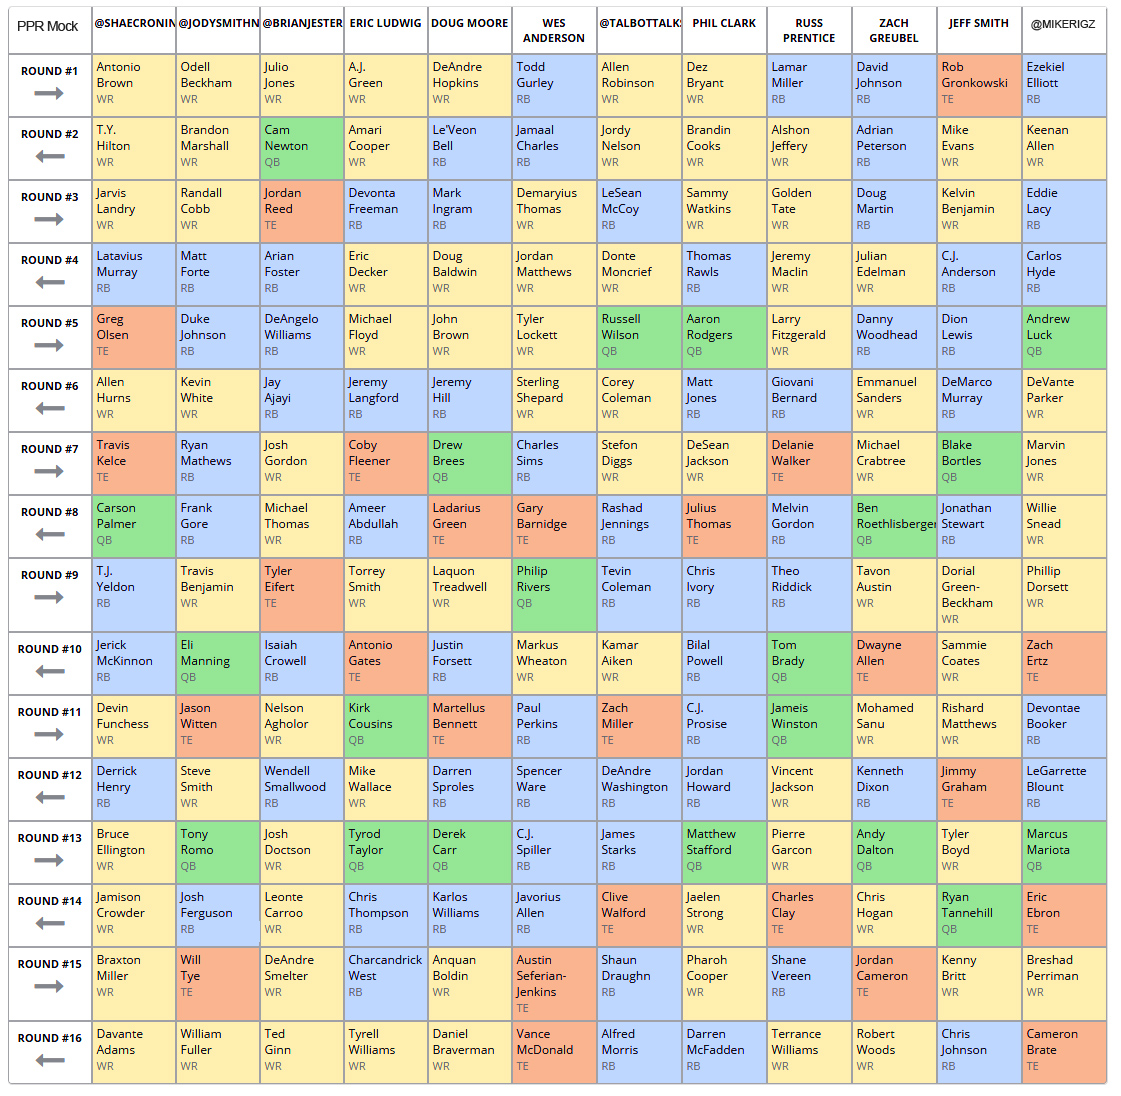 Gridiron Experts Staff PPR Mock Draft Results | Gridiron Experts